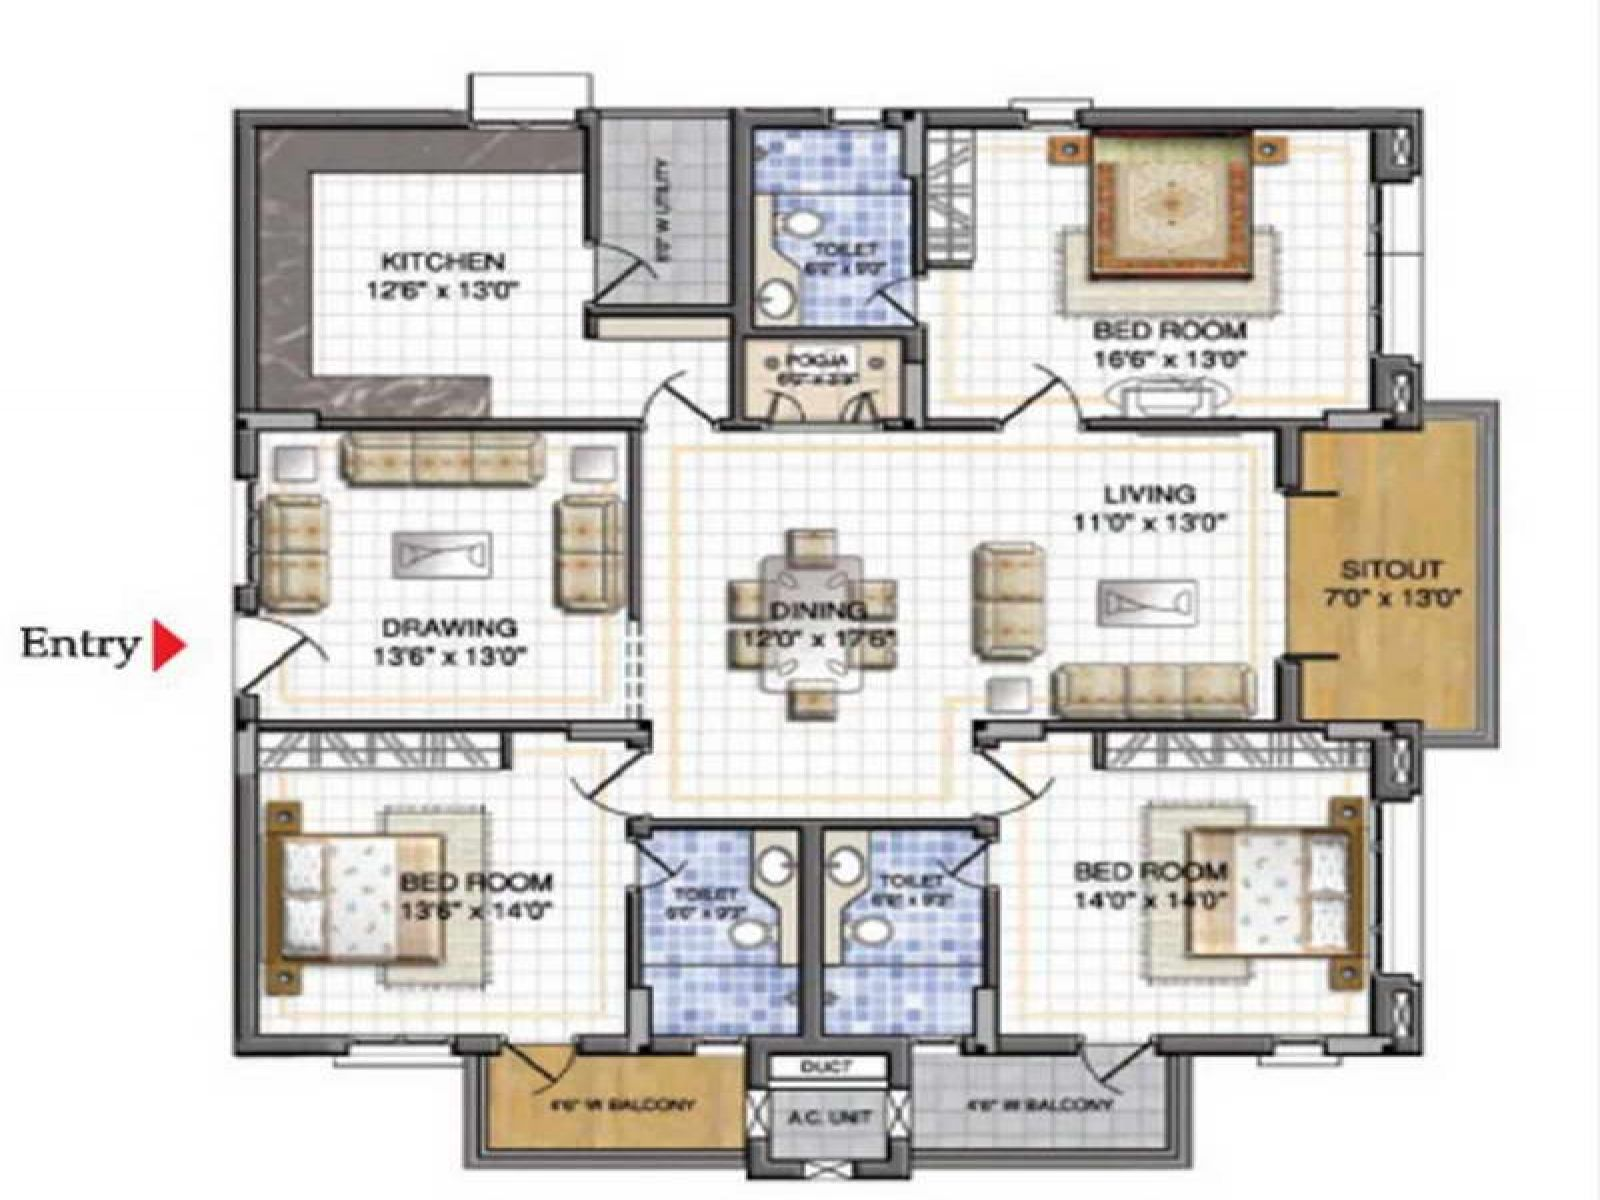 Sweet home 3d plans google search house designs How to design a room online